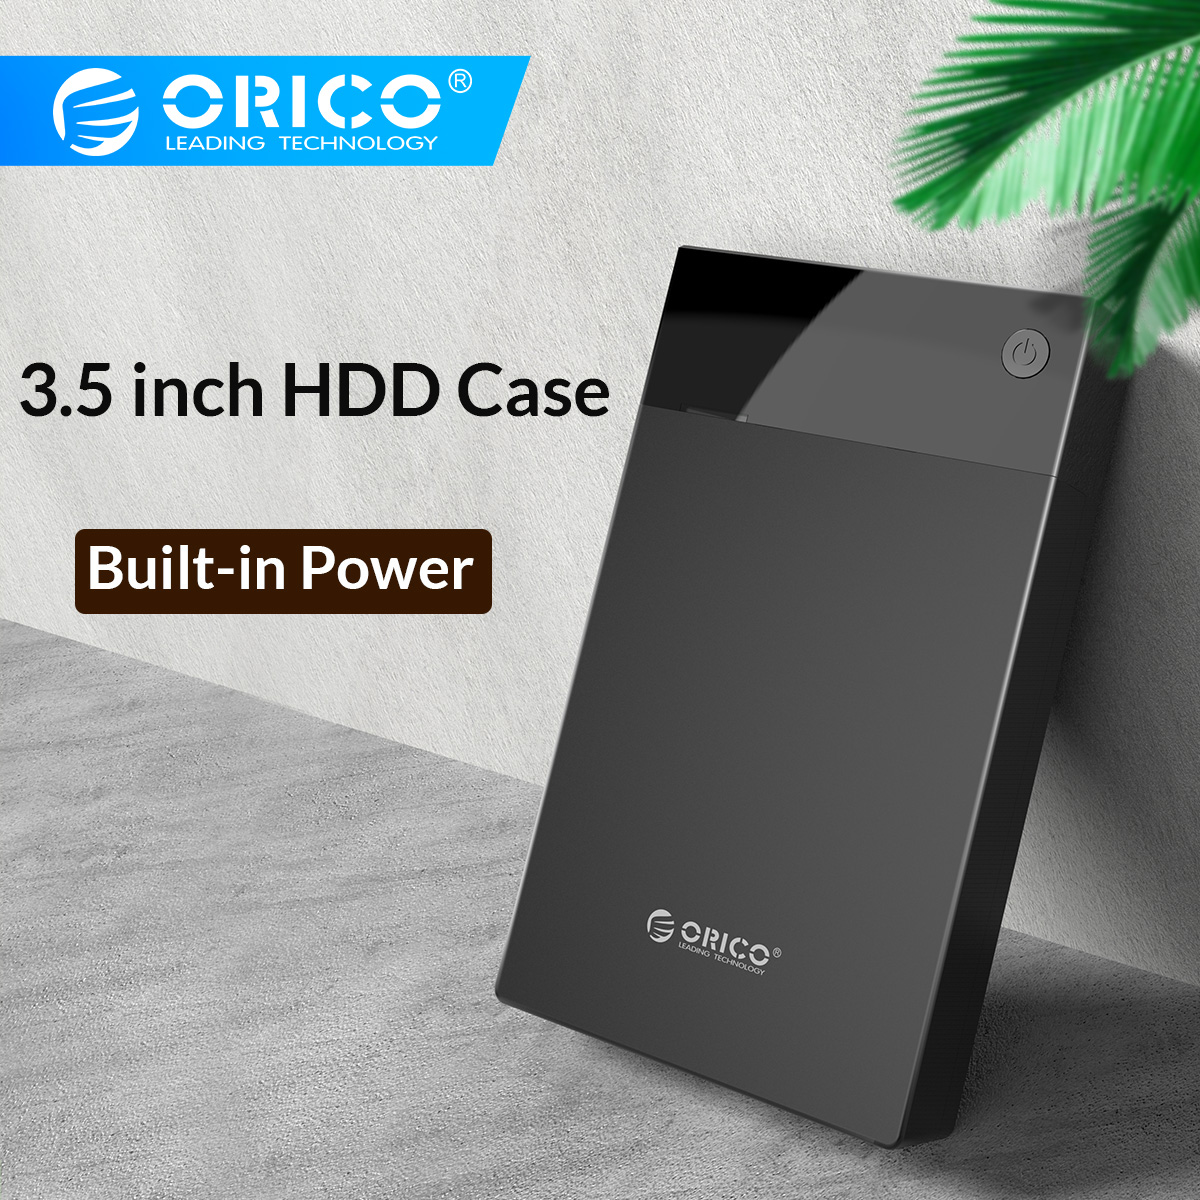 ORICO 3.5'' HDD Case Bulit-in Power SATA To USB 3.0 Hard Drive Enclosure 5Gbps Super Speed Support 16TB HDD UASP For PC TV PS4